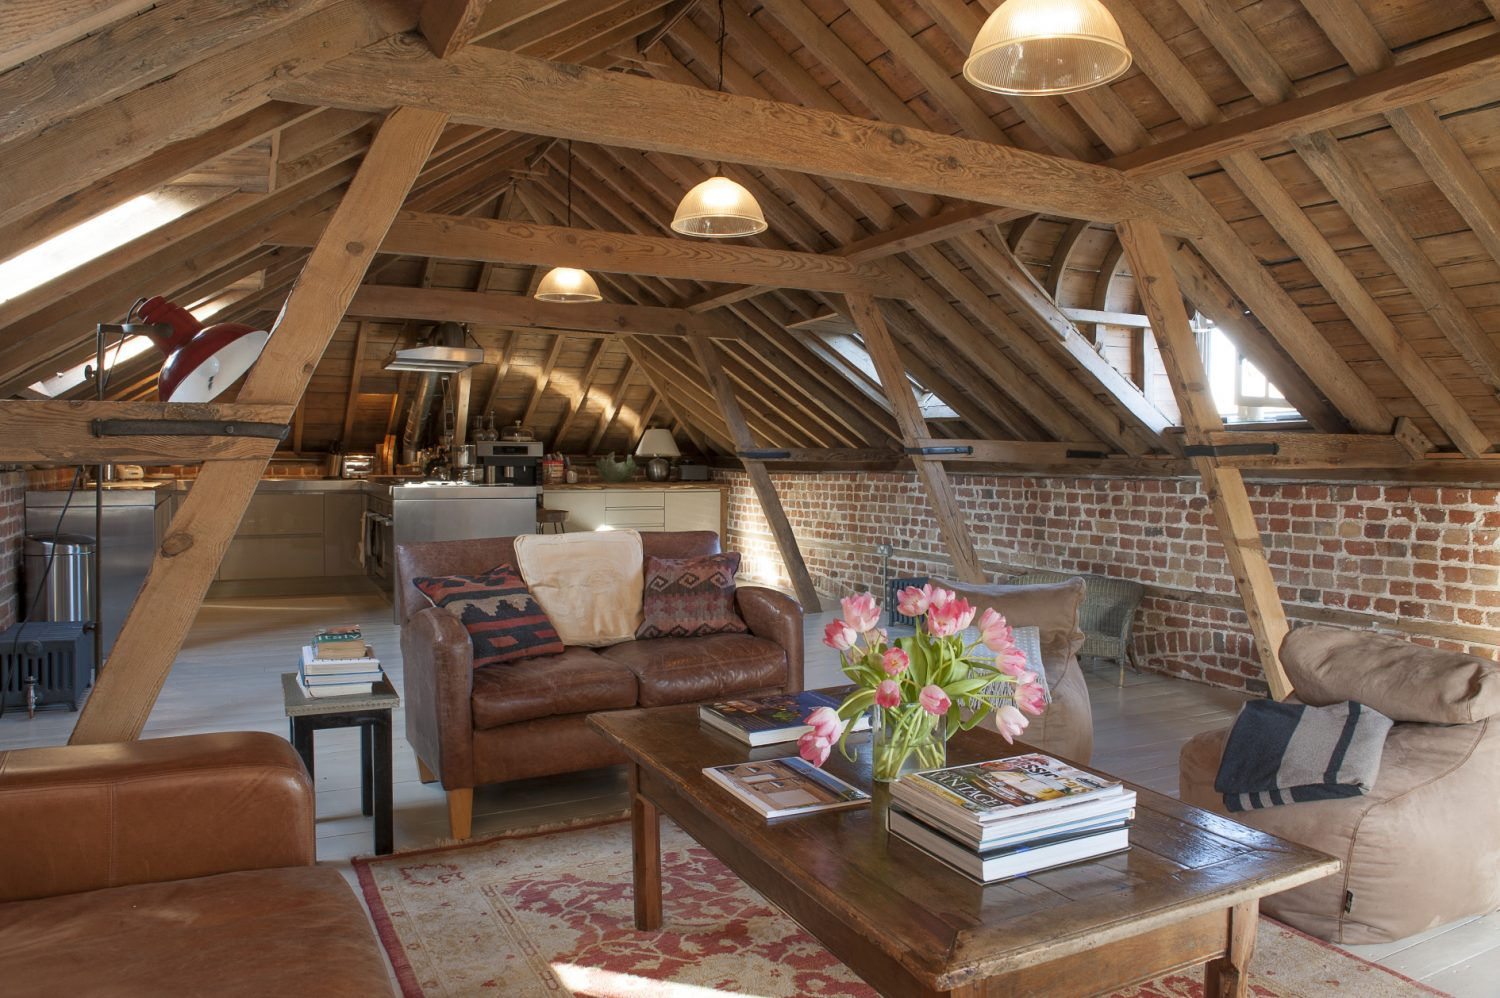 The spectacular space that was once the hay loft boasts superb 230-year-old timbers, every inch now sandblasted and lovingly waxed by hand to a honeyed glow. The only part of the building the couple were unable to save were the floorboards that have now been replaced with irregular-sized painted boards